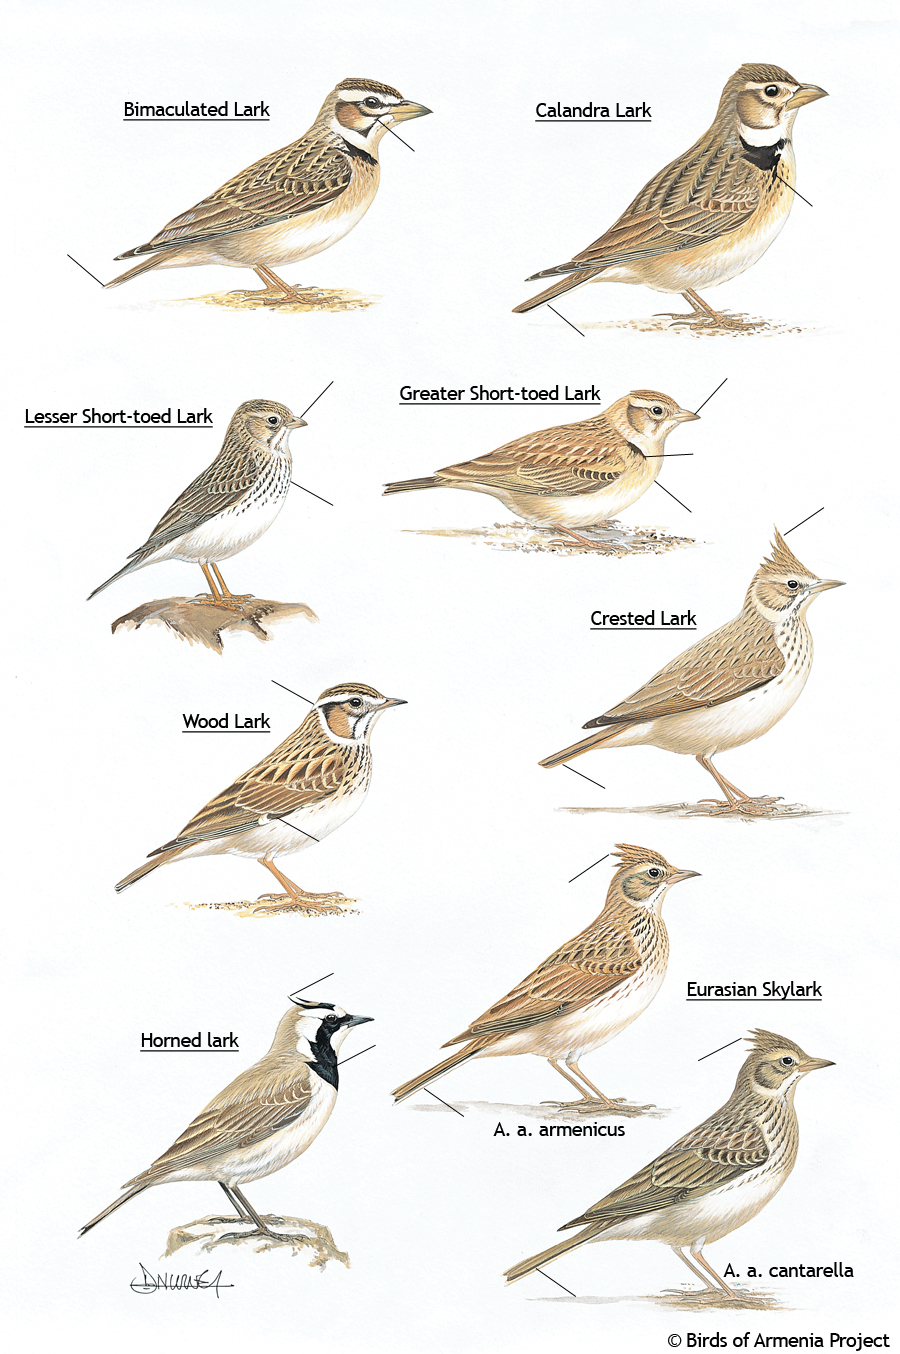 Larks and skylarks